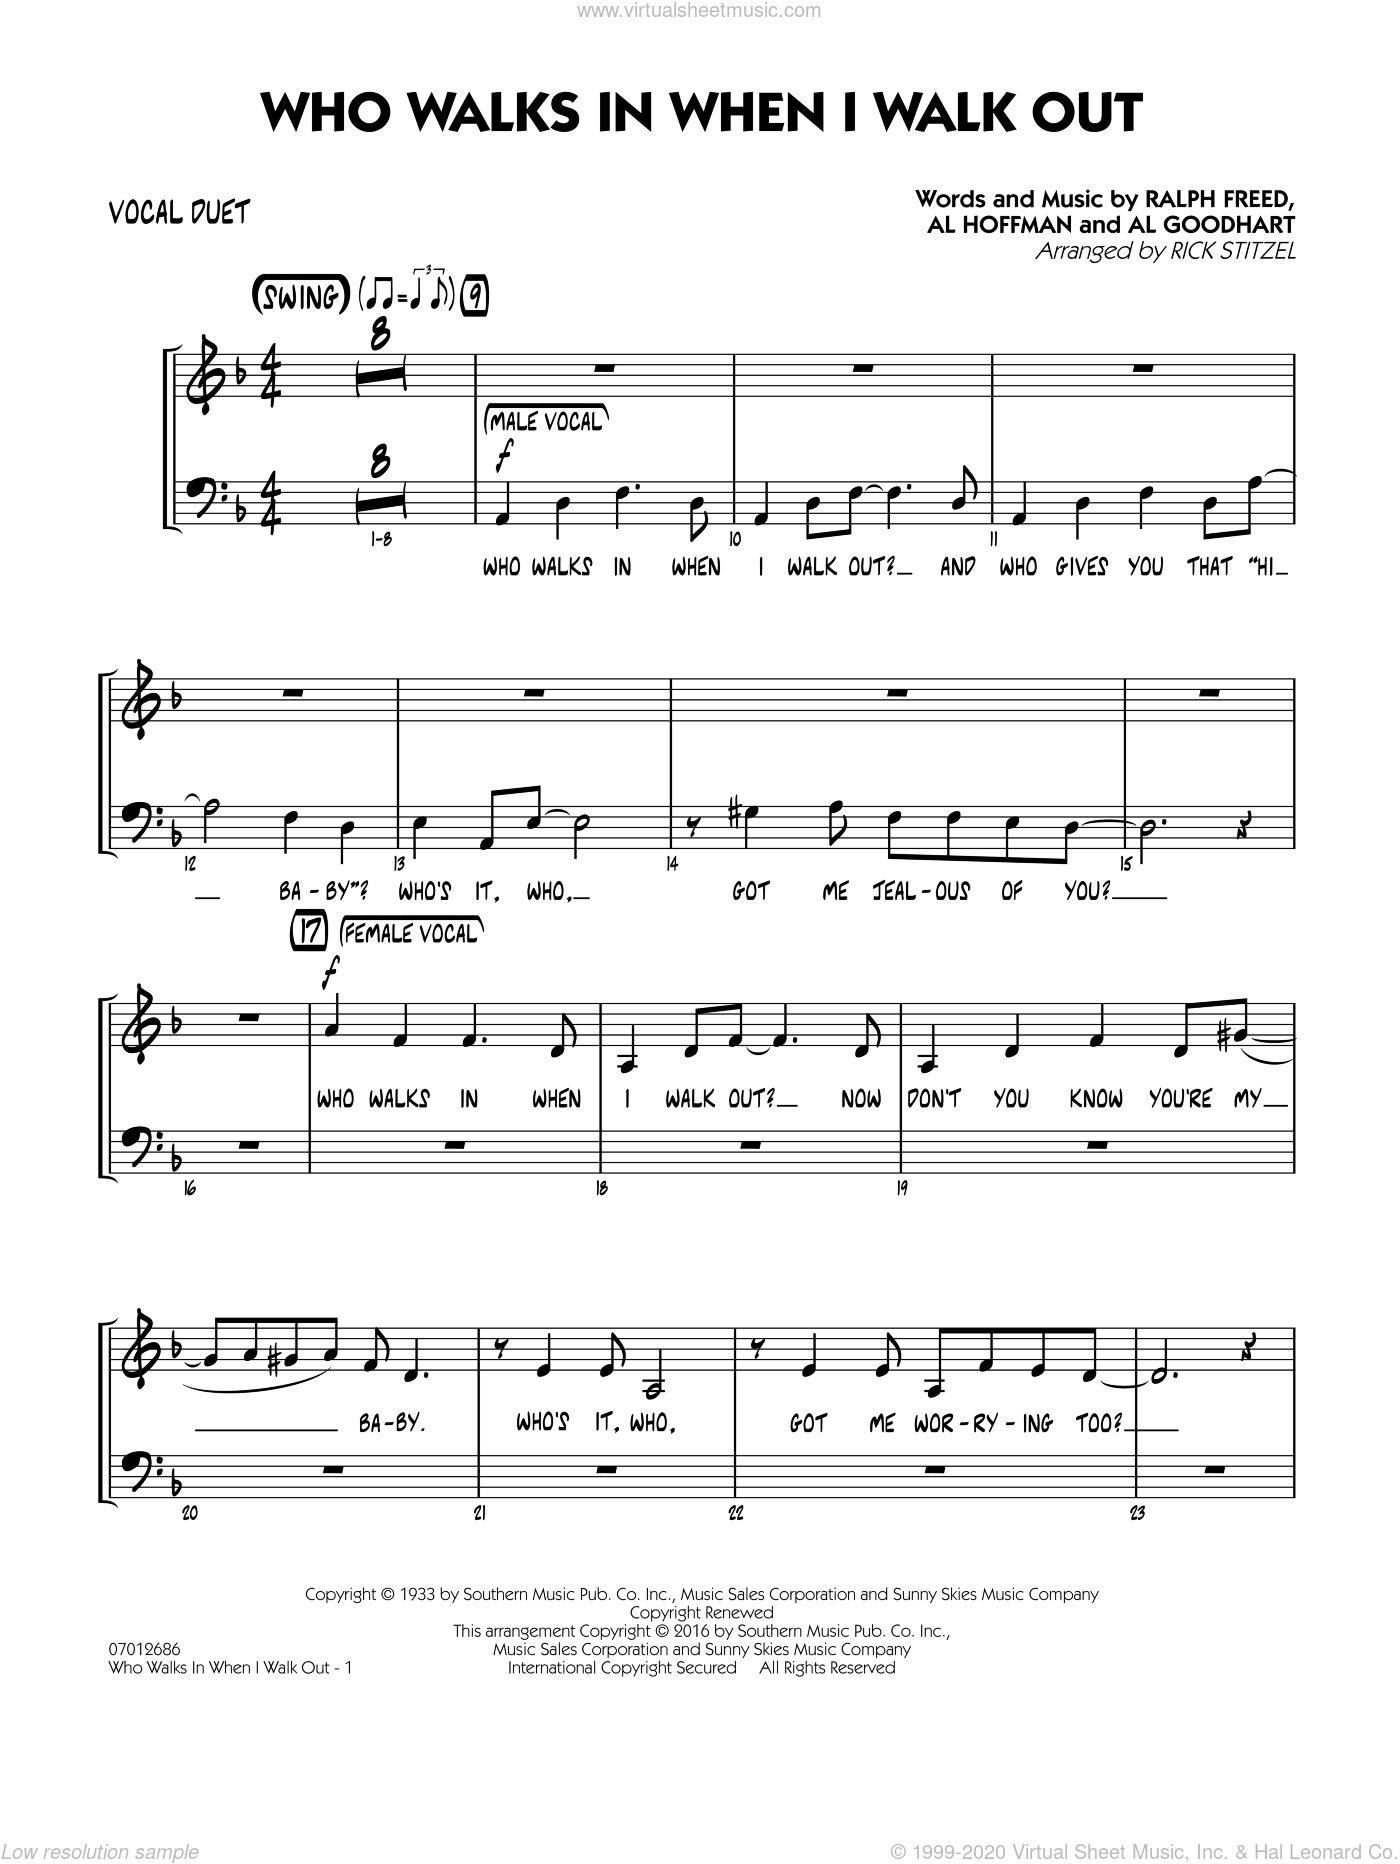 Who Walks In When I Walk Out? (Key: D minor) sheet music for jazz band (vocal duet) by Al Hoffman, Rick Stitzel, Ella Fitzgerald, Louis Armstrong, Al Goodhart and Ralph Freed, intermediate. Score Image Preview.